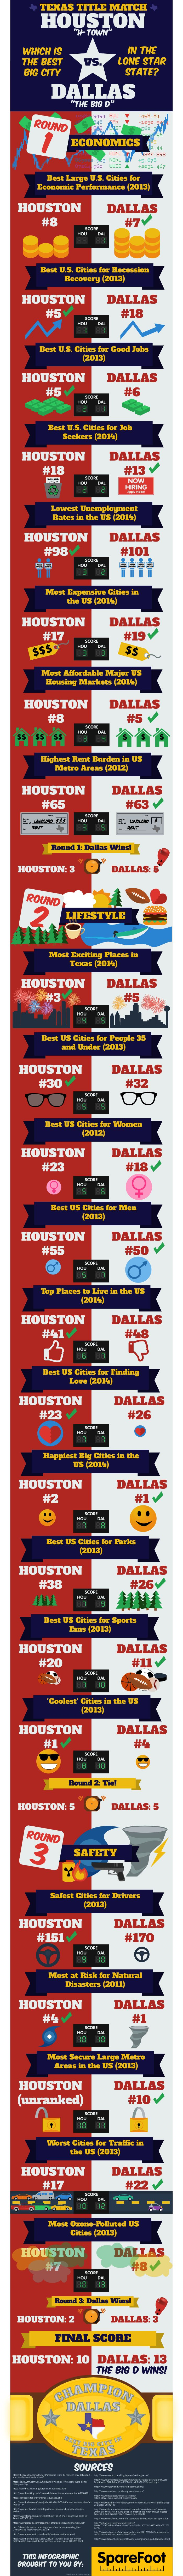 Dallas vs. Houston: Which Big City Is the Star of Texas?  #Houston #Texas #Dallas #infographic